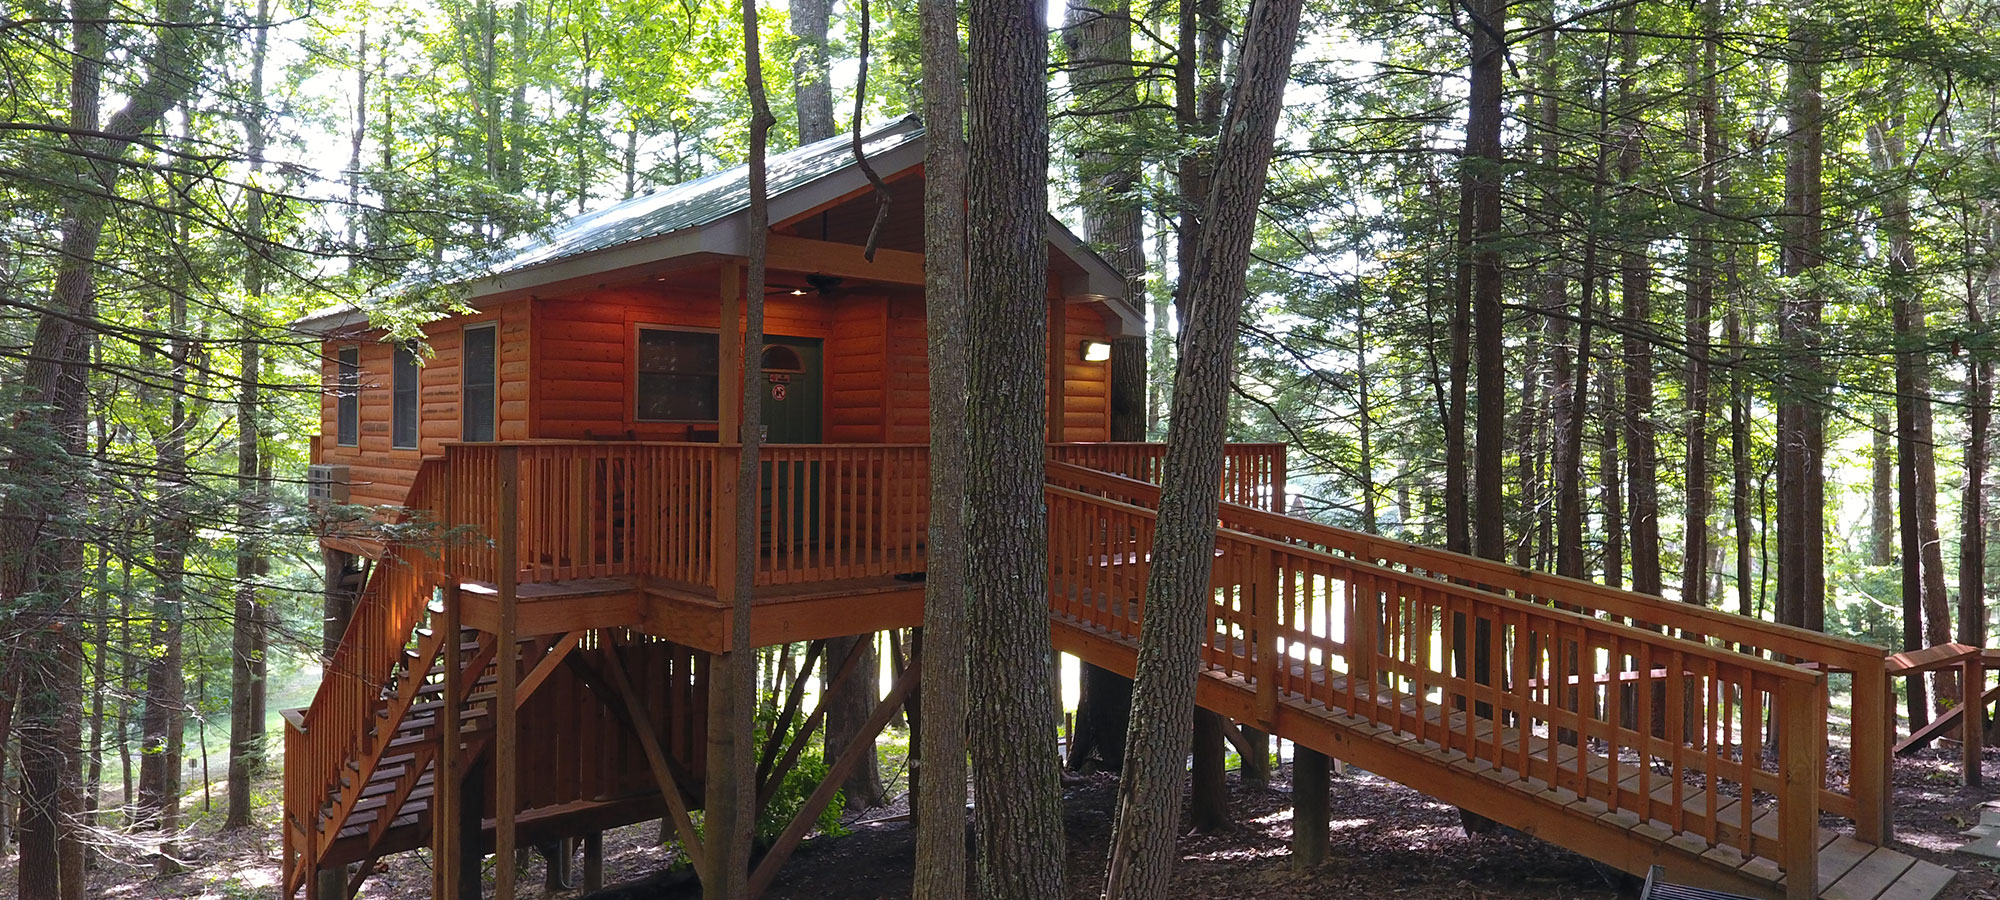 Wv S Grand View Treehouse The Cabins At Pine Haven